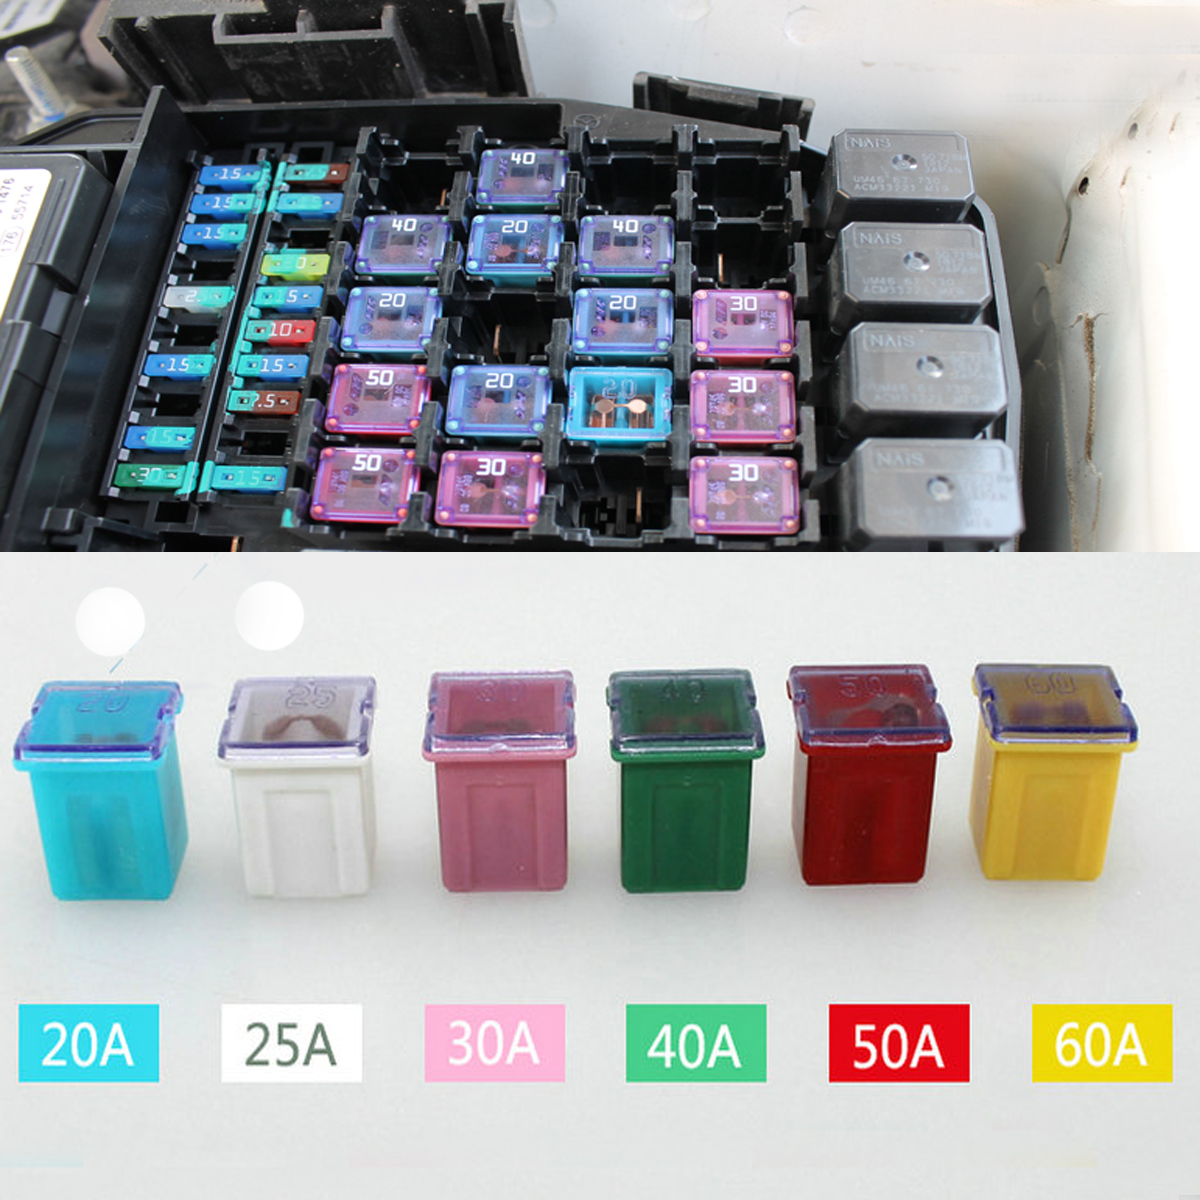 small resolution of packing included 60 pcs fuse 10 x 60a yellow fuse 10 x 50a red fuse 10 x 40a green fuse 10 x 30a pink fuse 10 x 25a white fuse 10 x 20a blue fuse